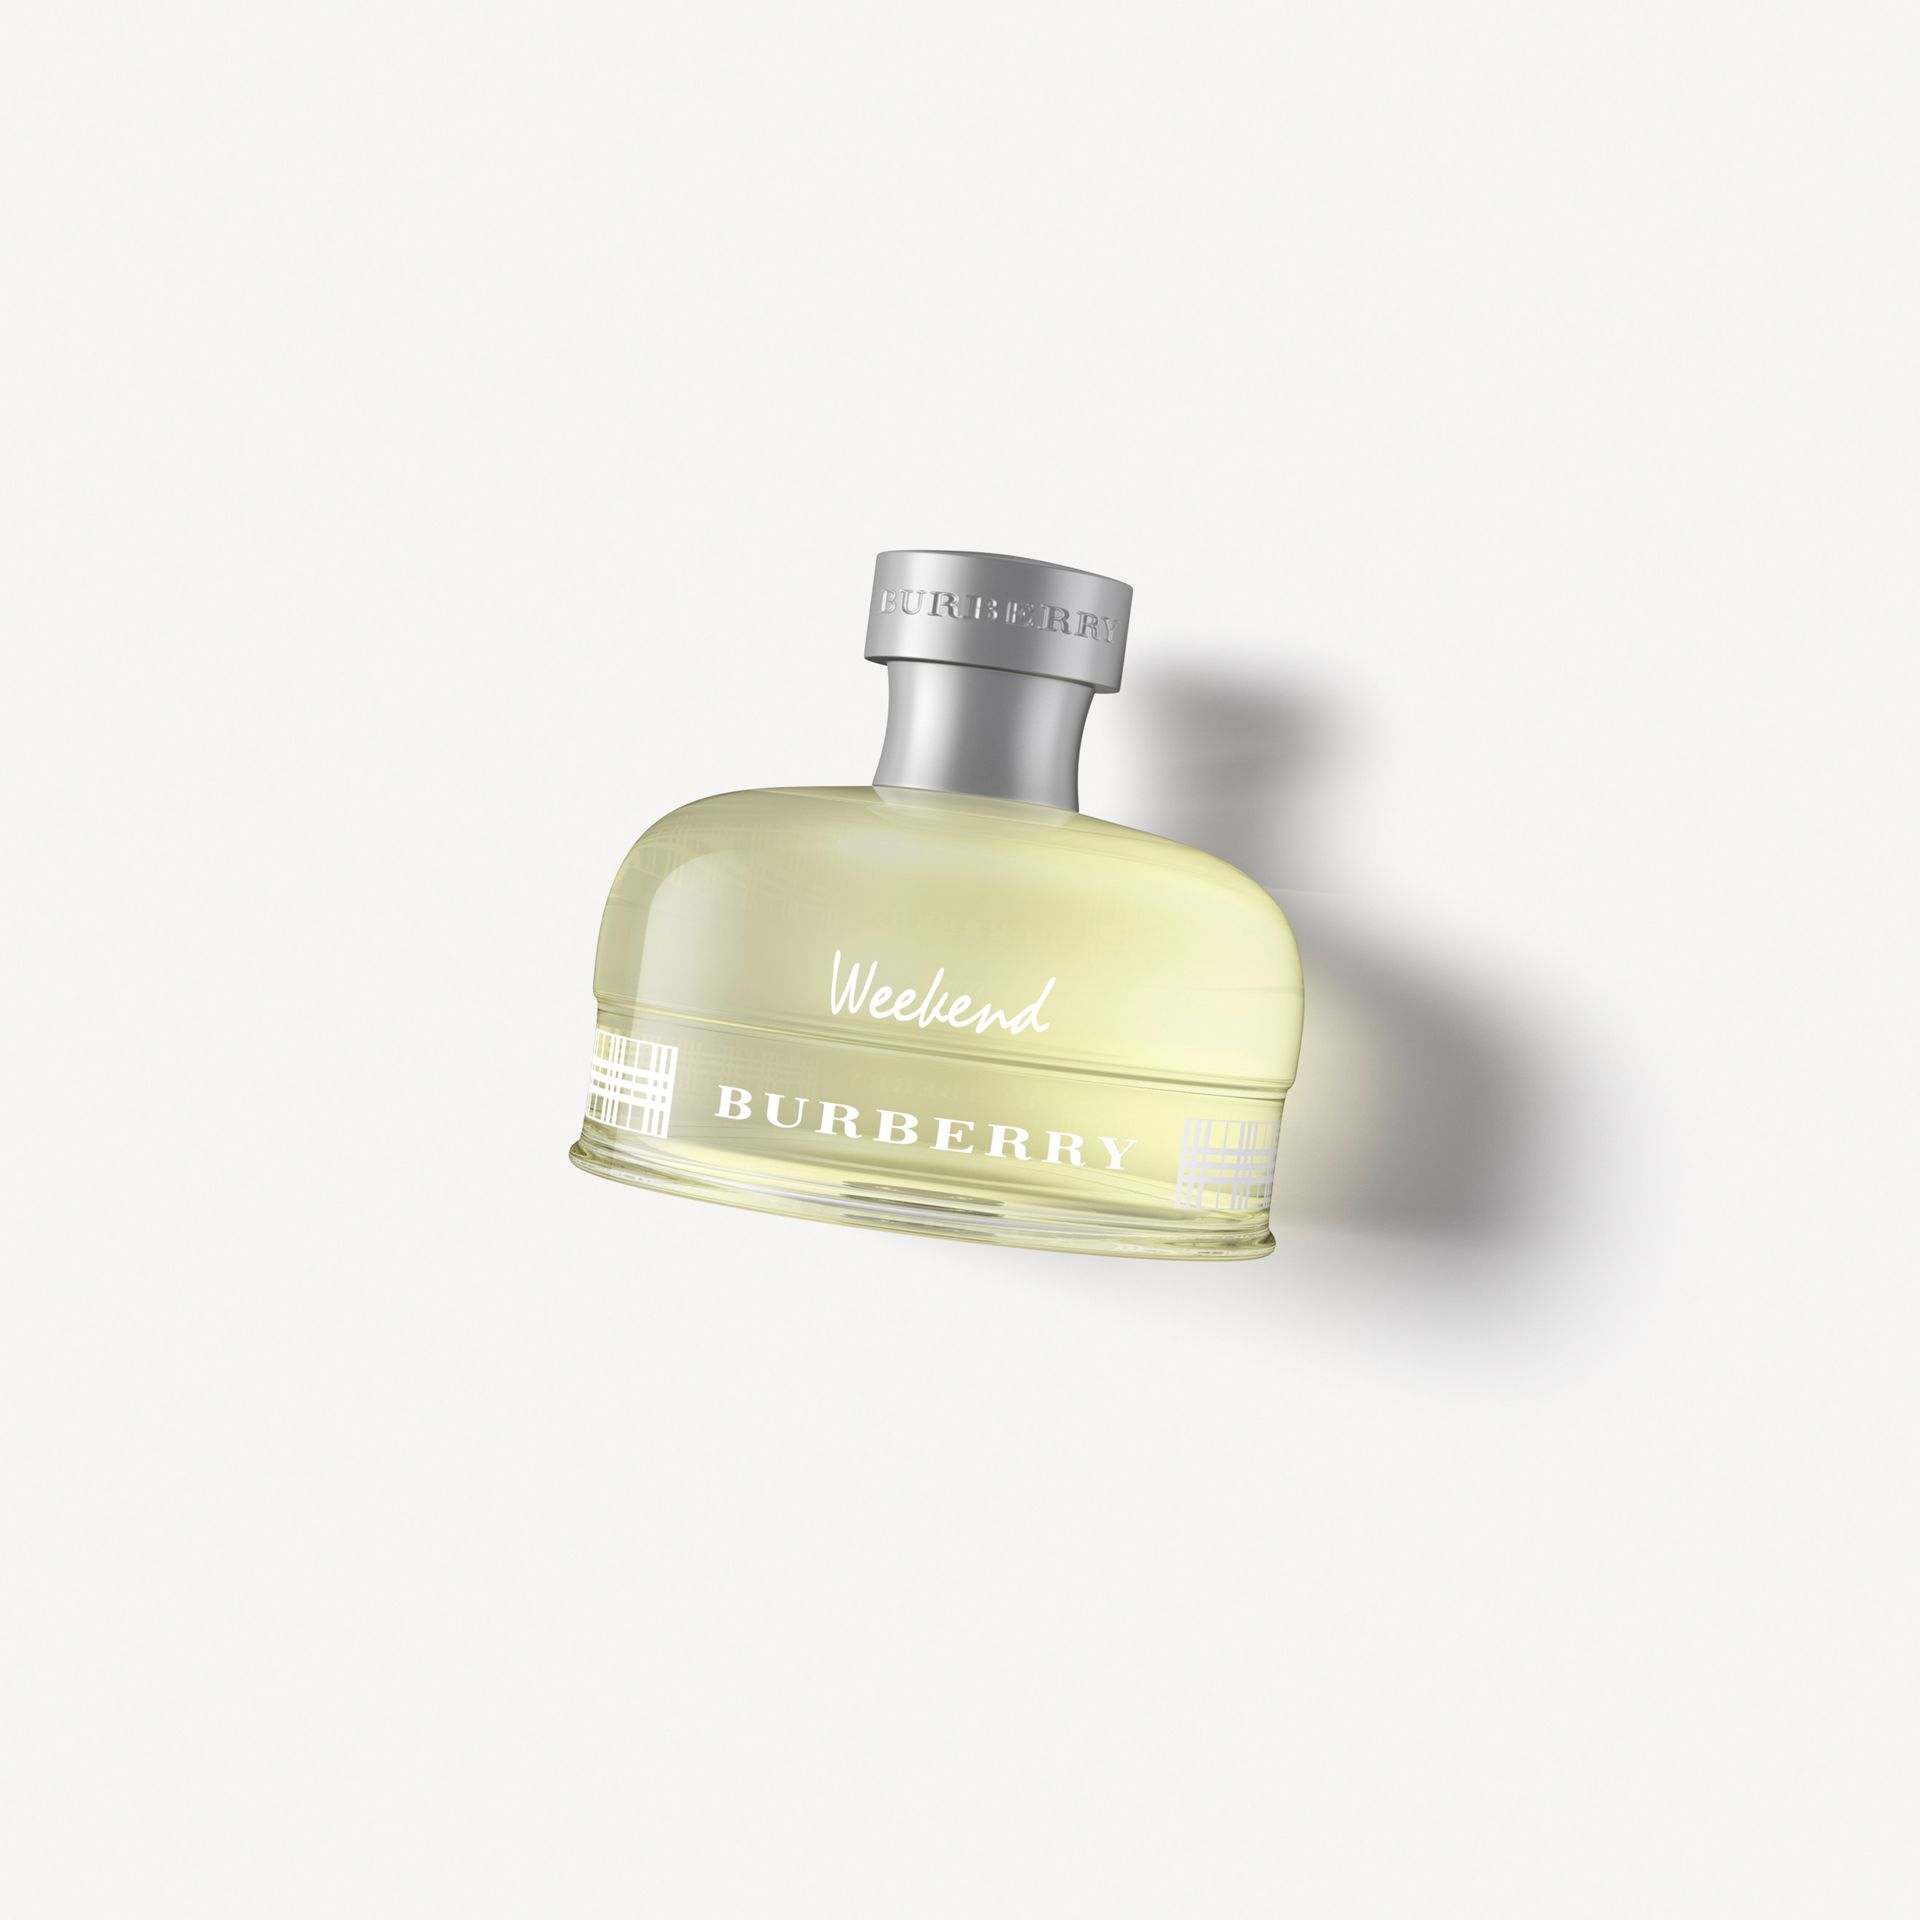 Burberry Weekend Eau de Parfum 100 ml - Galerie-Bild 1